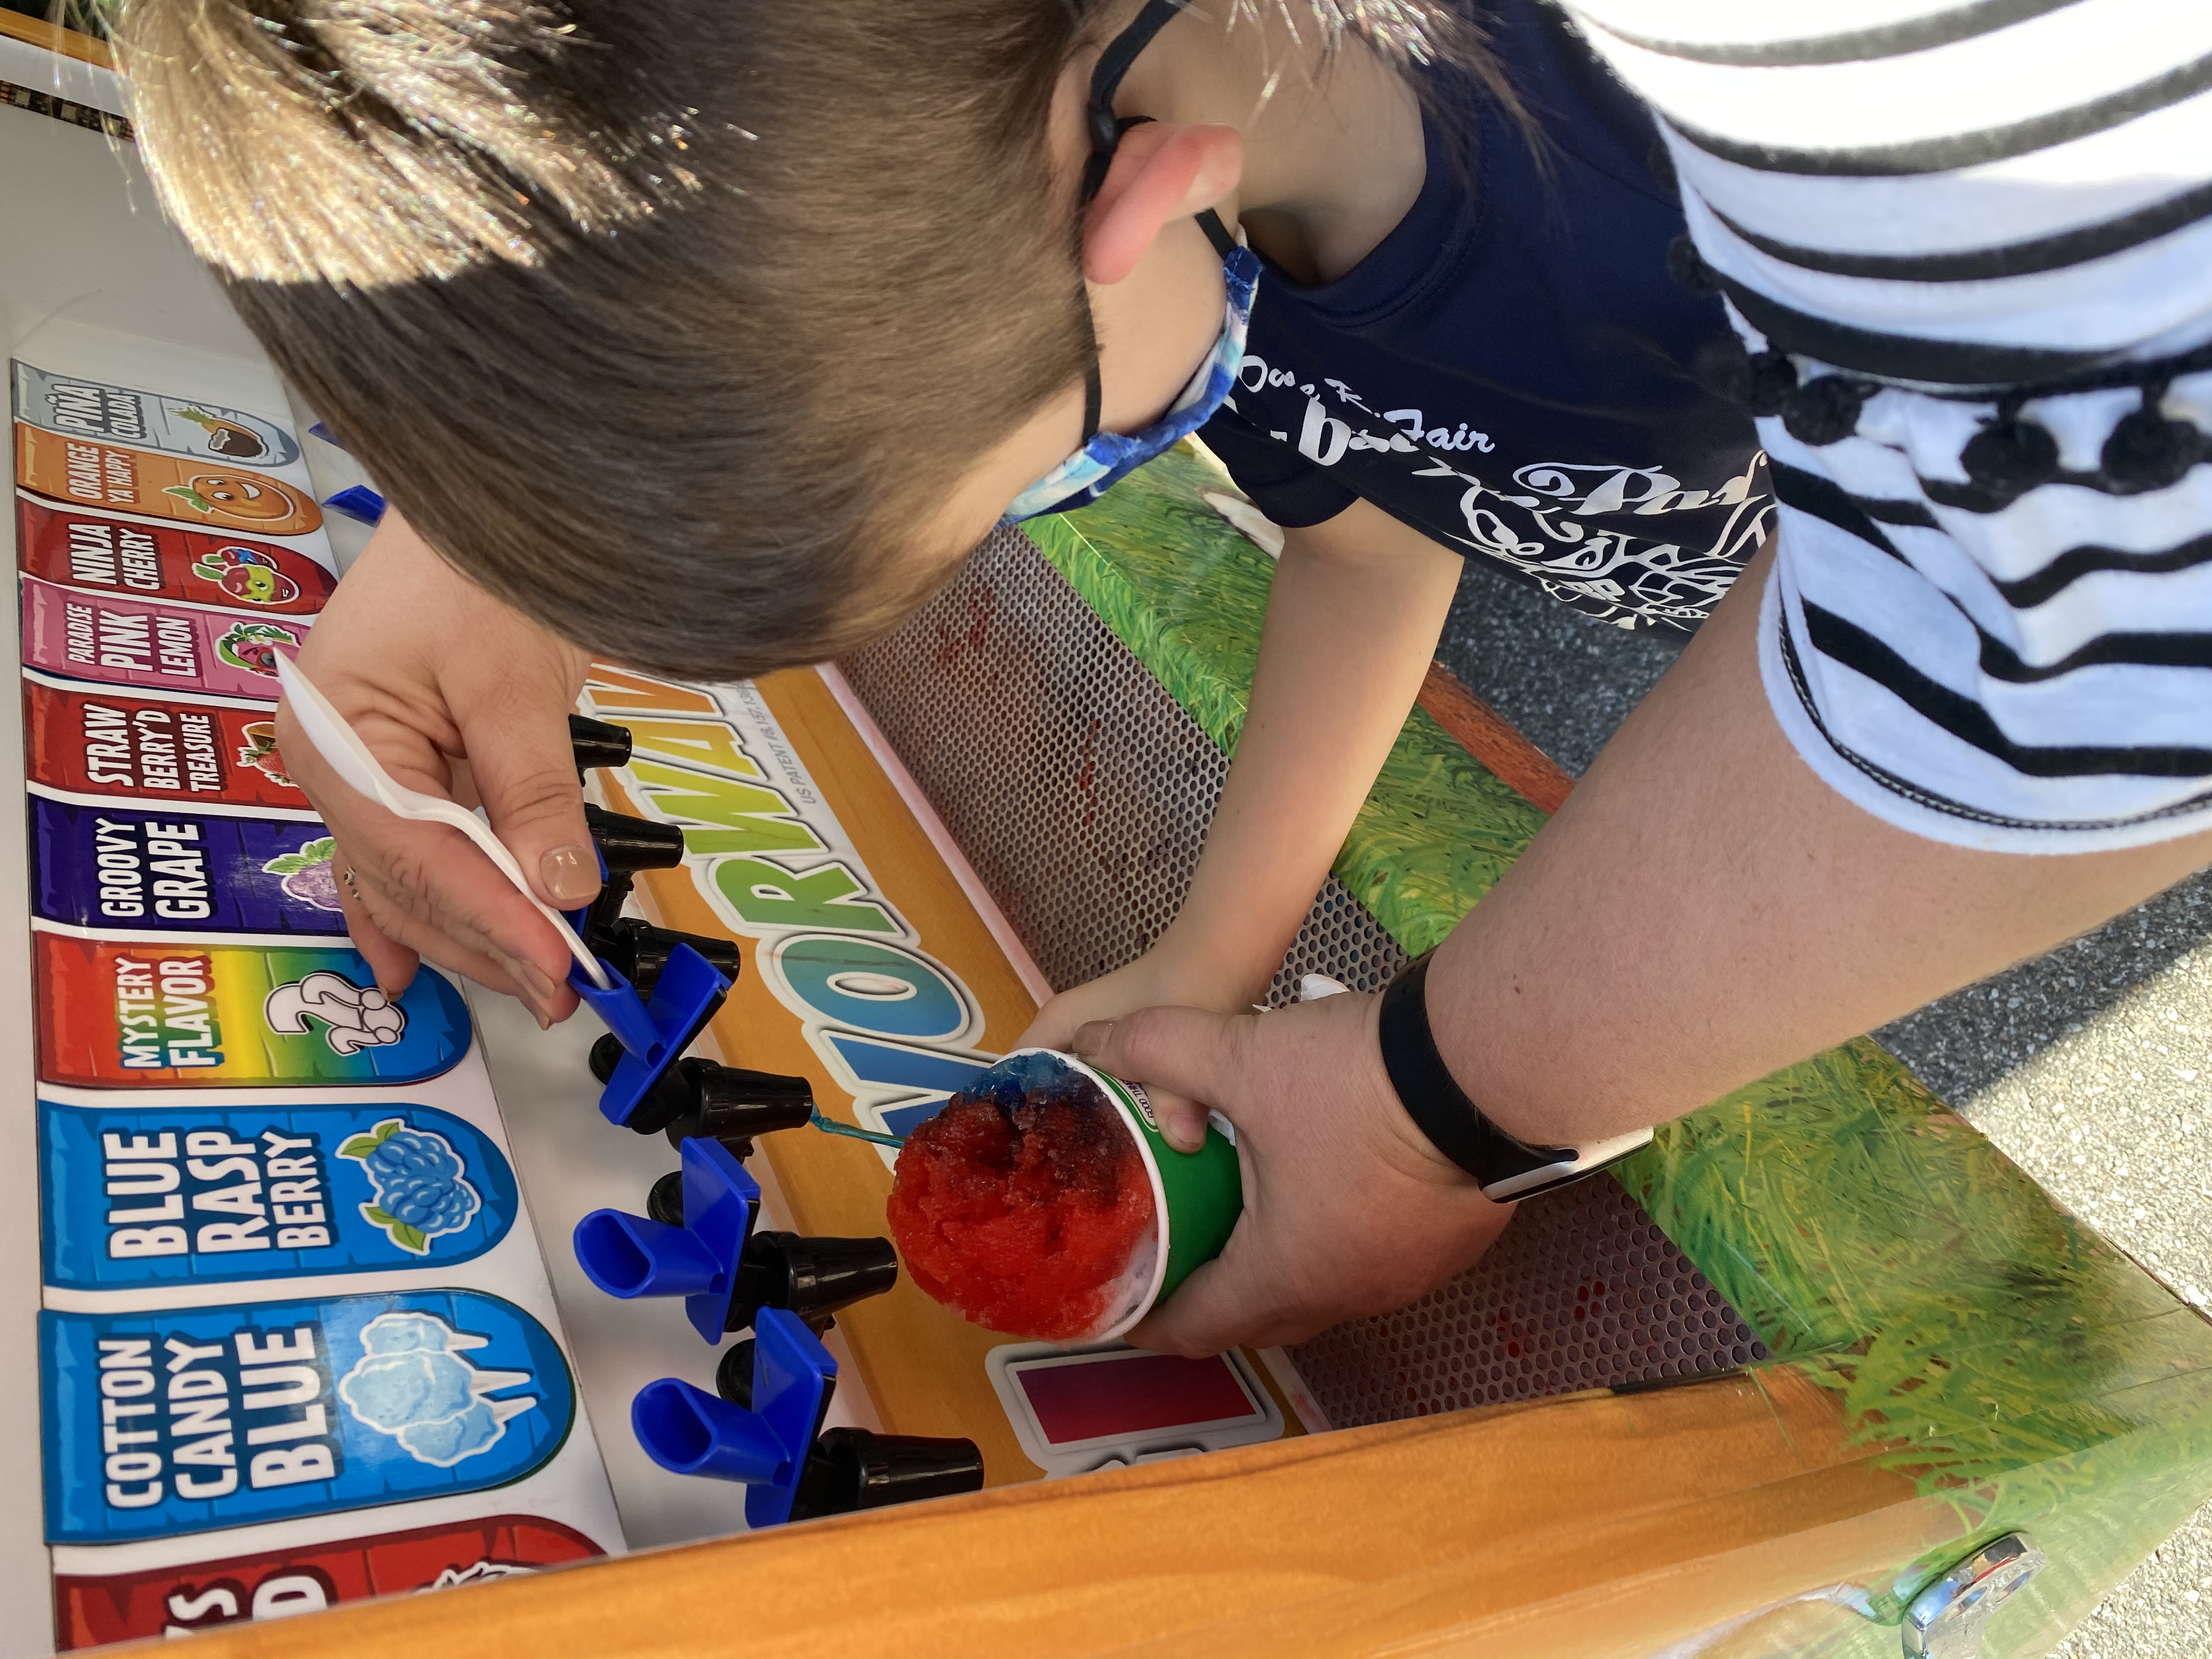 Adding flavoring to a Kona Ice